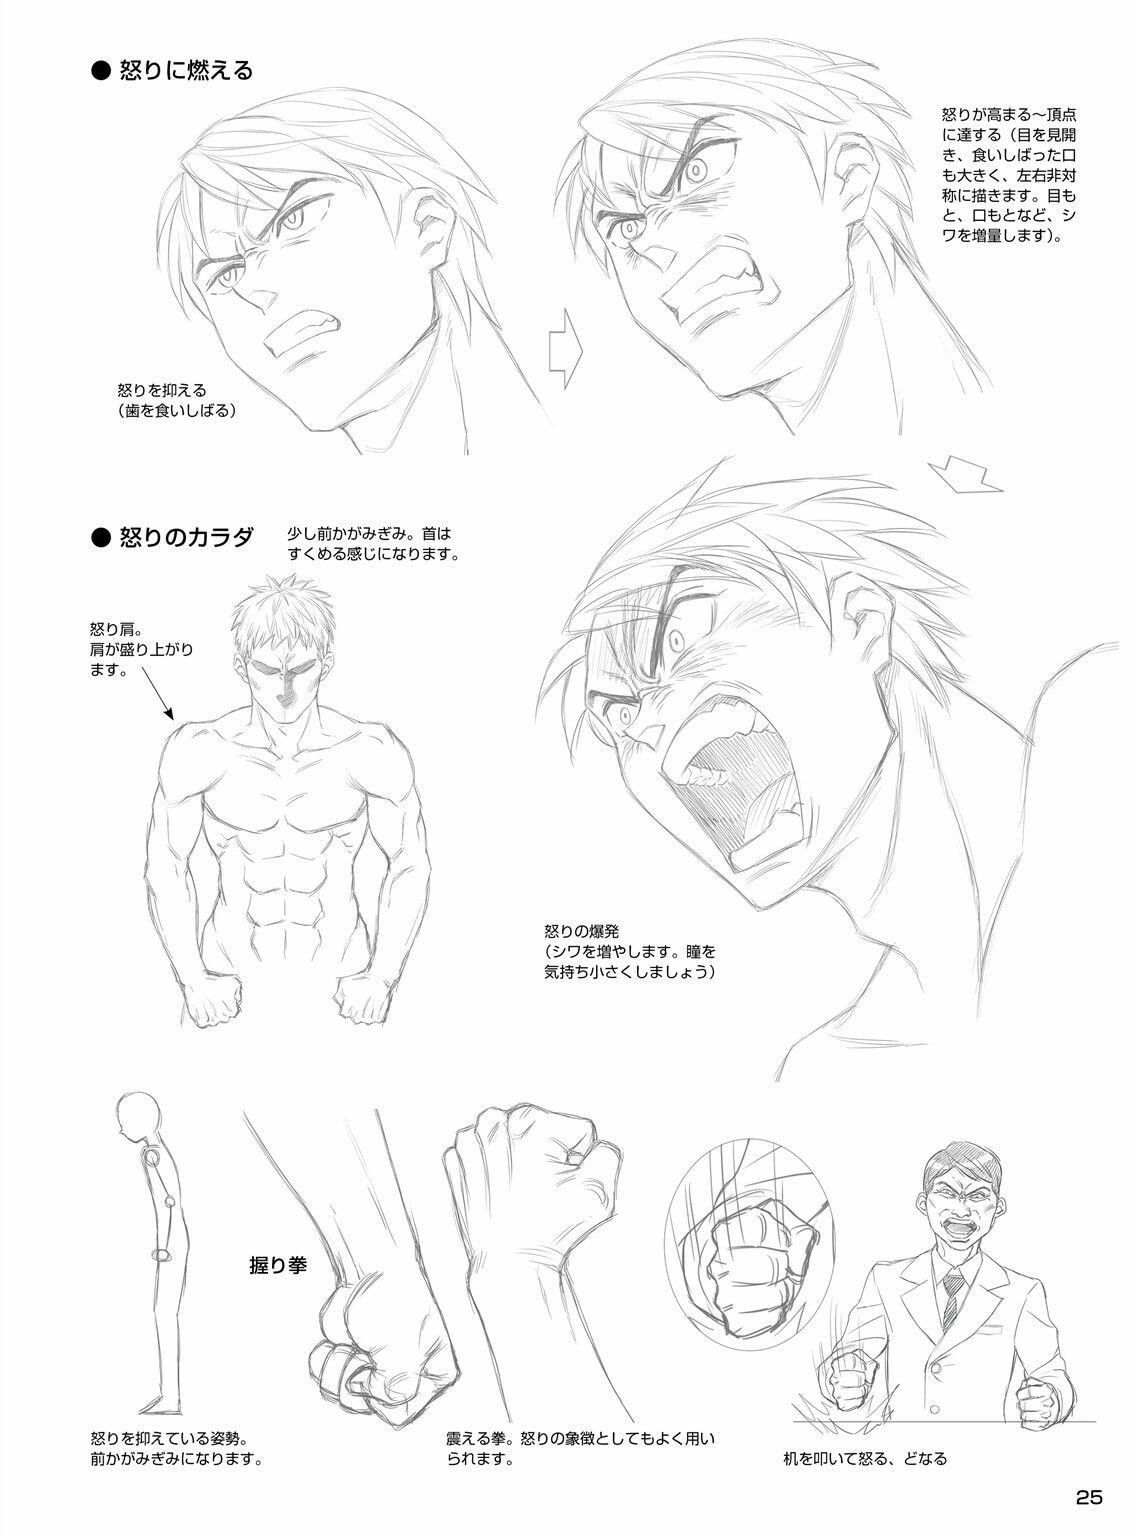 Pinning So I Can Use That Guys Angry Expression As A Reference In The Future Xd Drawing Expressions Manga Drawing Tutorials Manga Drawing